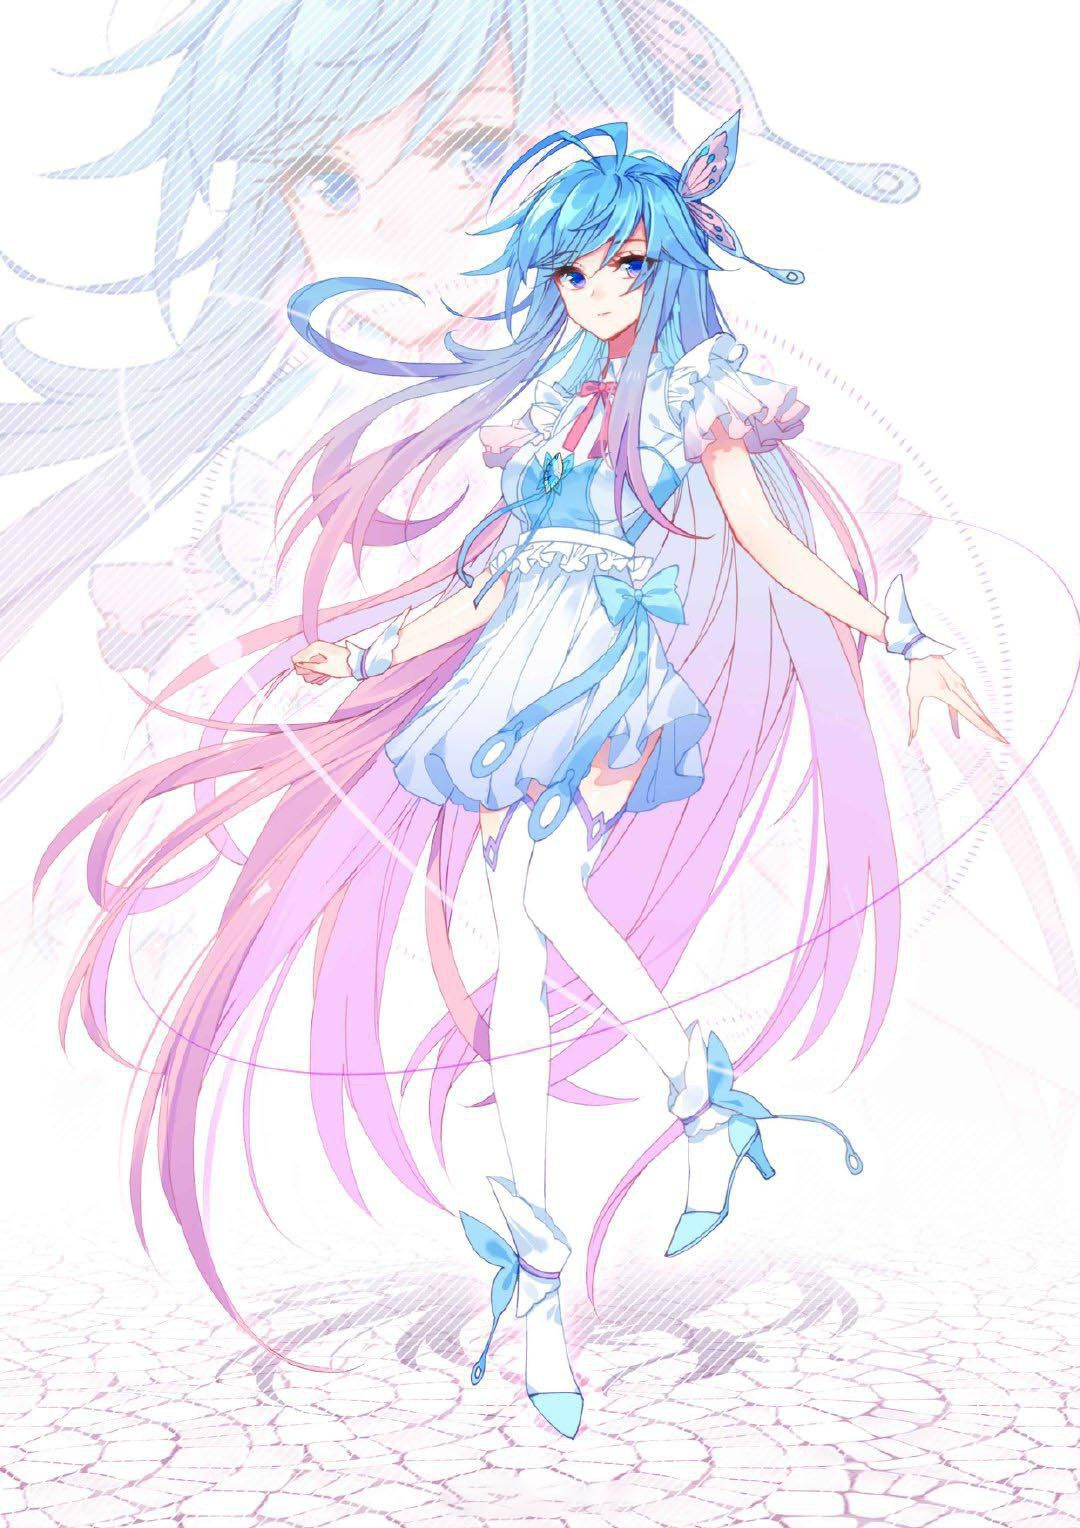 I reincarnated into an otome game as a villainess! - Characters